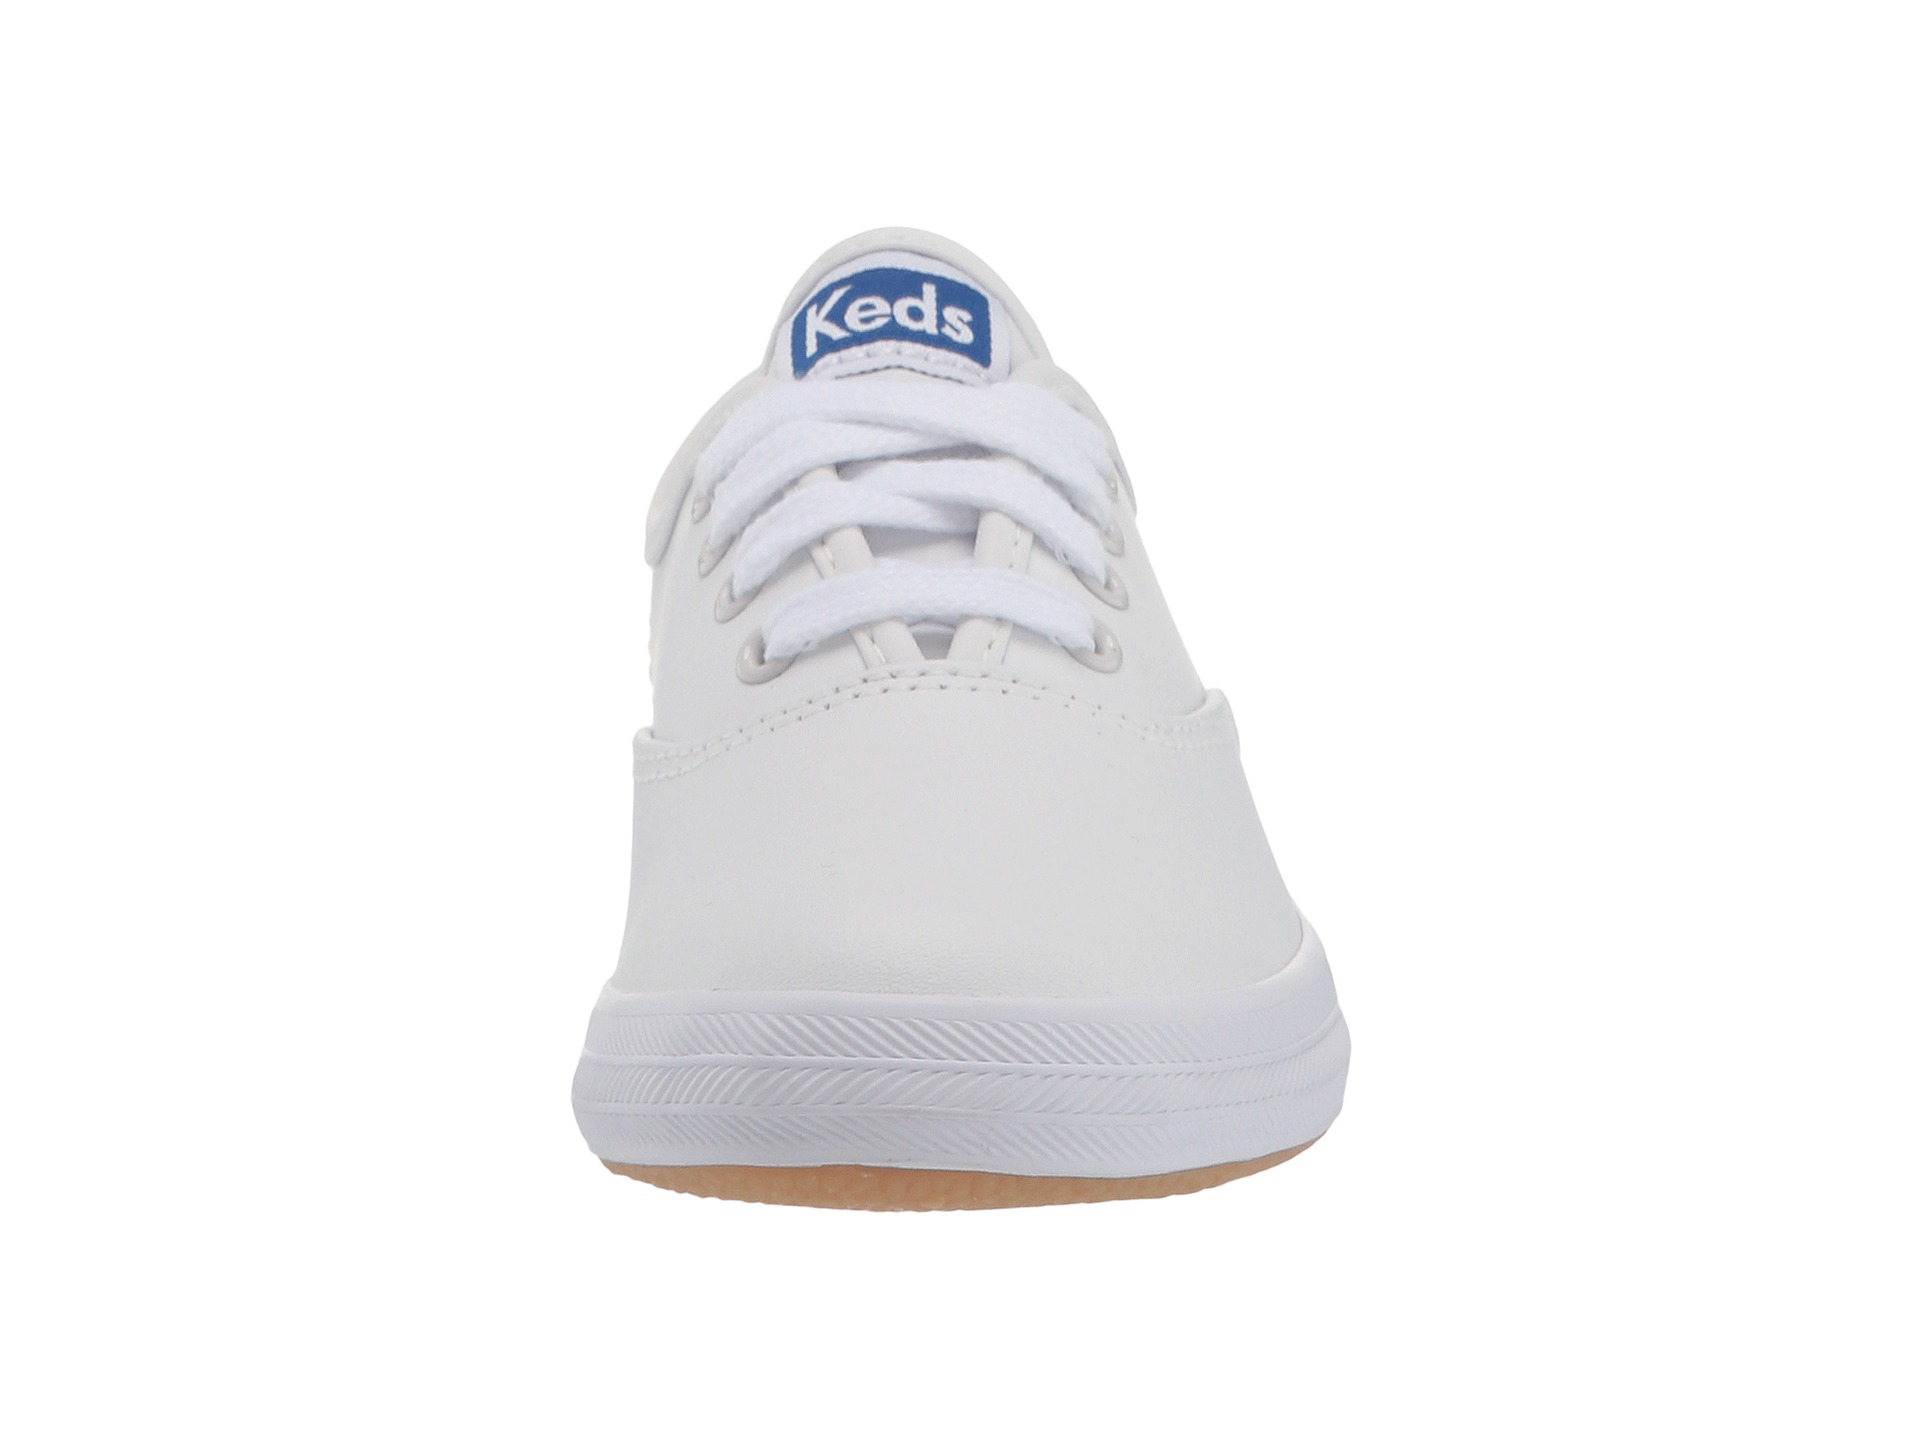 4f8fffd36d0190 Keds Kids Original Champion CVO (Little Kid Big Kid) White Leather ...